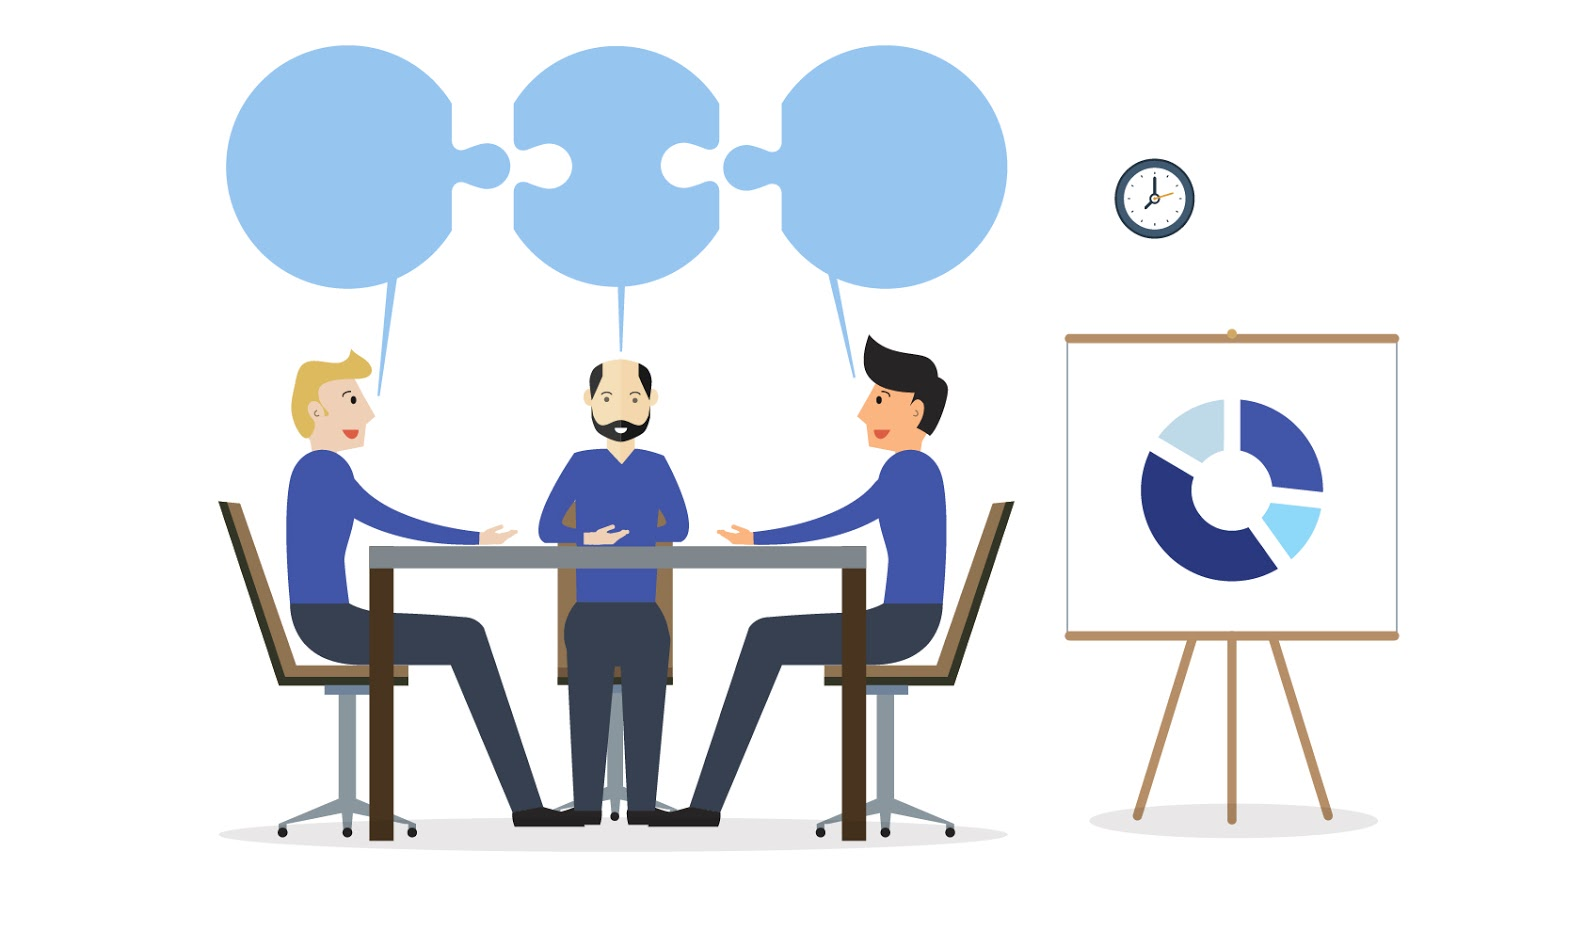 HBR Illustration of 3 men sitting at a meeting table with puzzle pieces above their heads